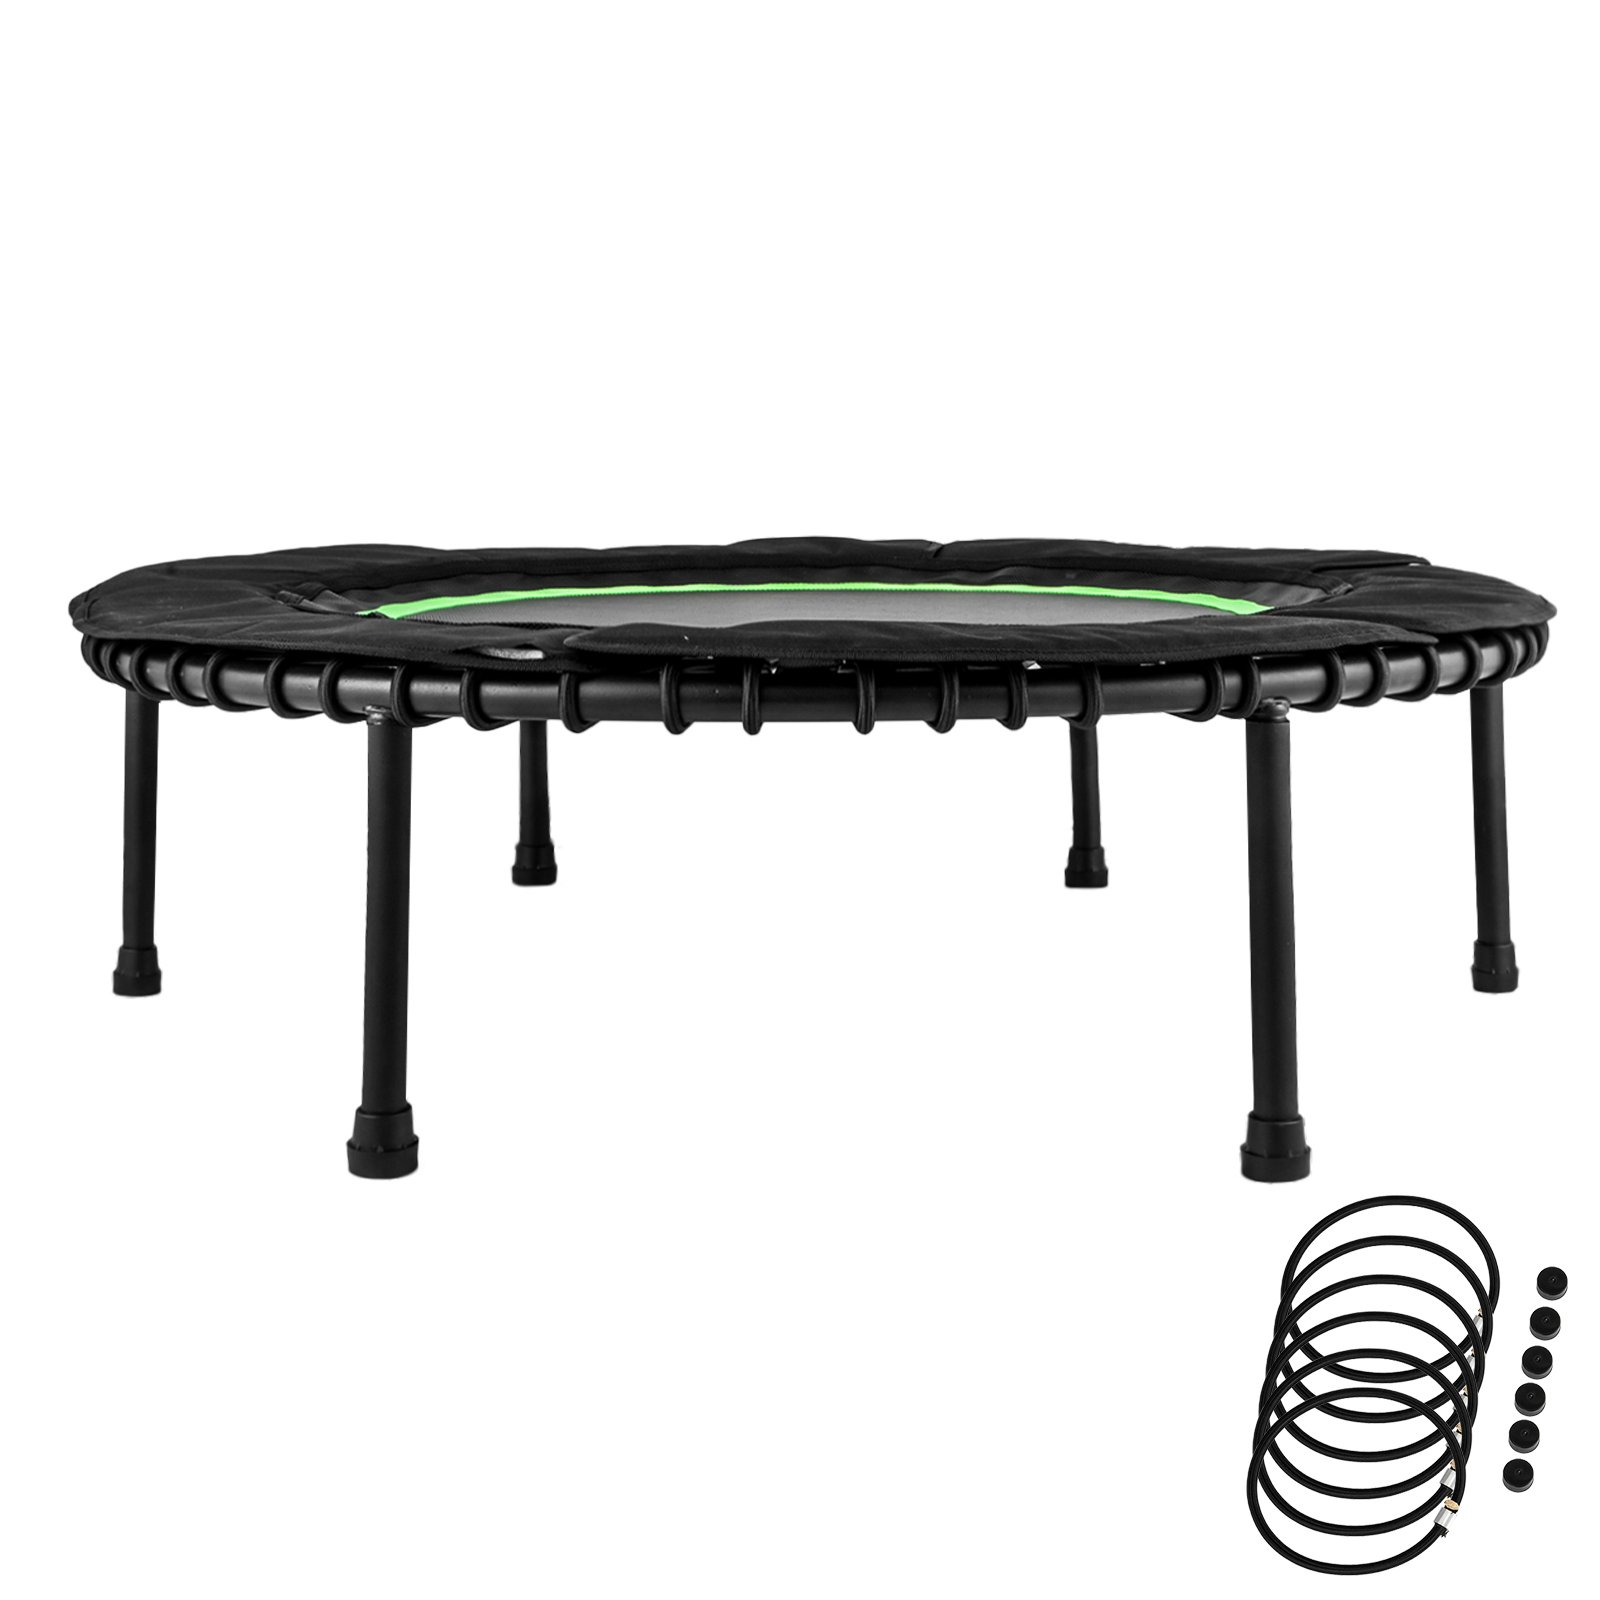 ShareProfit 40'' Fitness Trampoline 330lbs Holding Capacity Portable Exercise Trampoline with Latex Rubber Bungees Elastic Jump Mat Bungee Rebounder Mini Trampoline